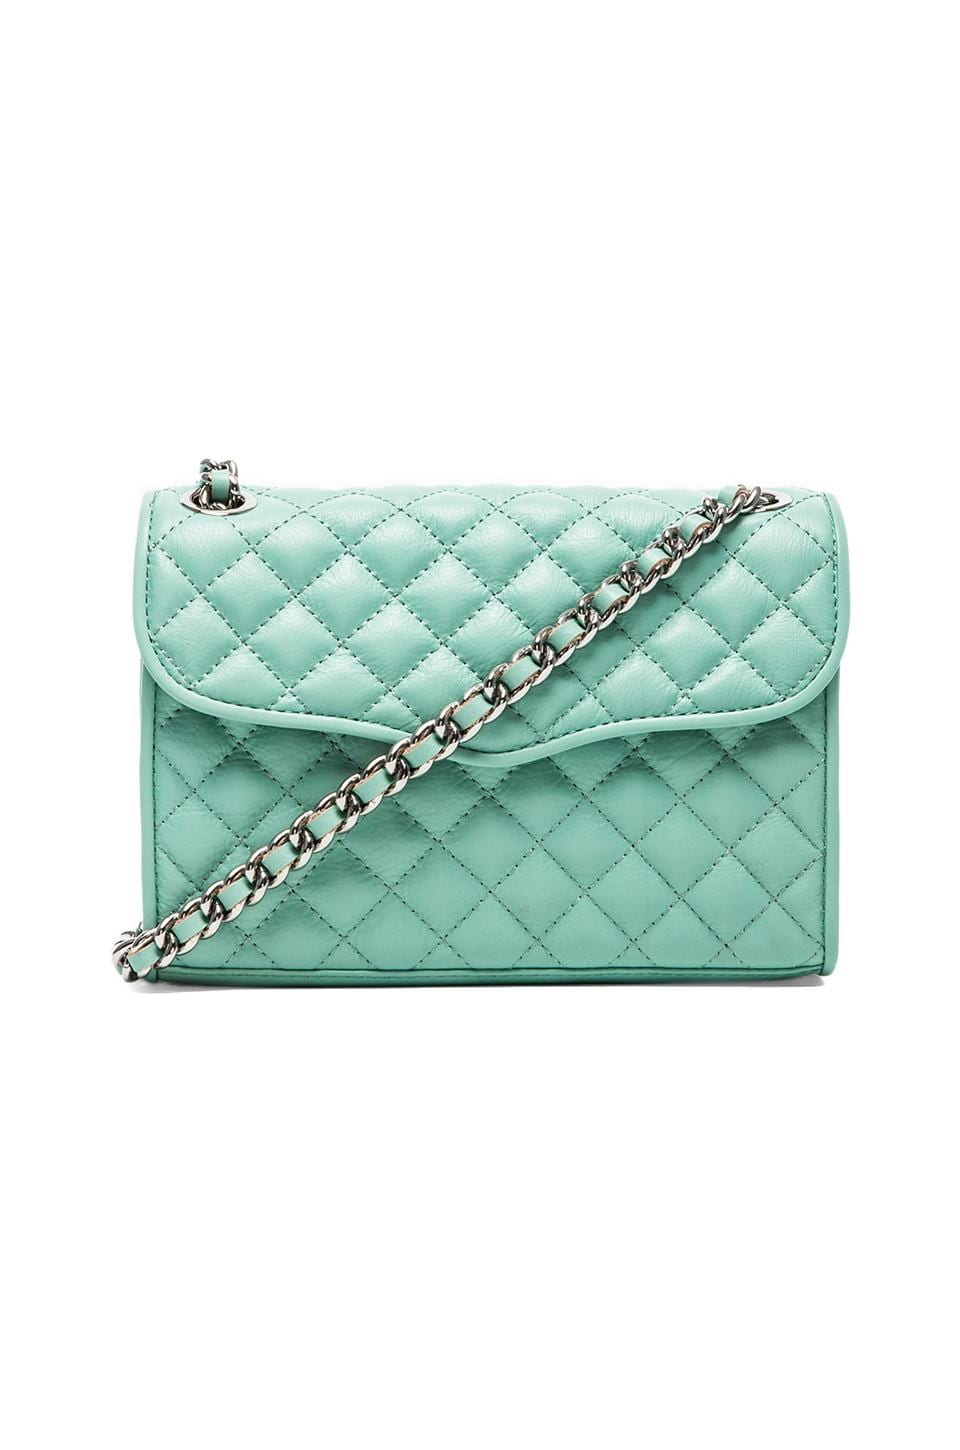 Rebecca Minkoff Quilted Mini Affair in Minty